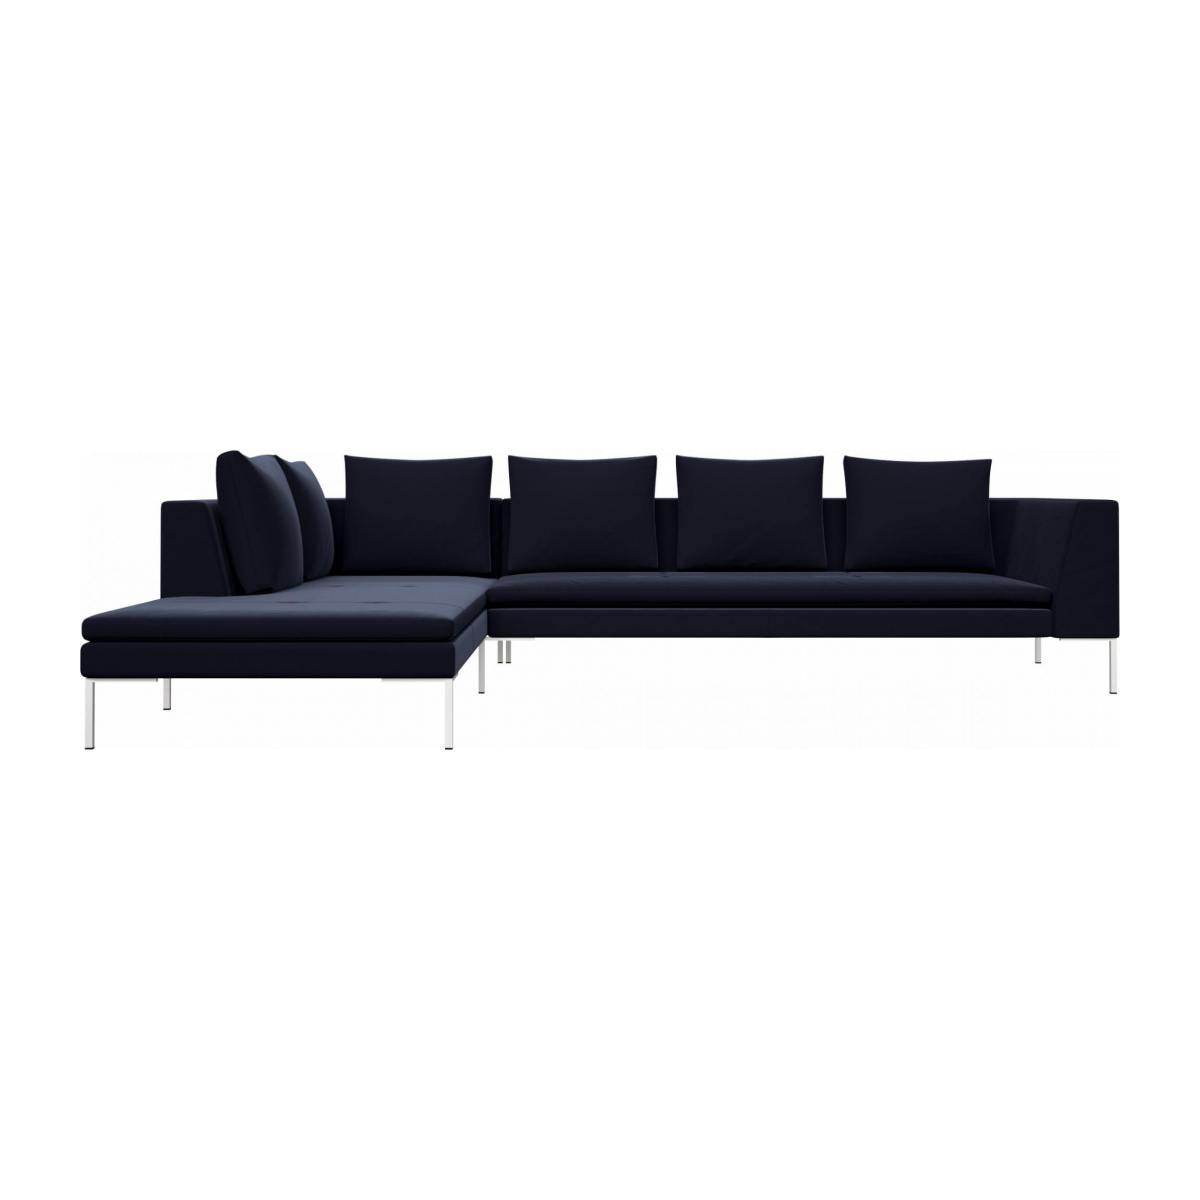 3 seater sofa with chaise longue on the left in Super Velvet fabric, dark blue  n°1